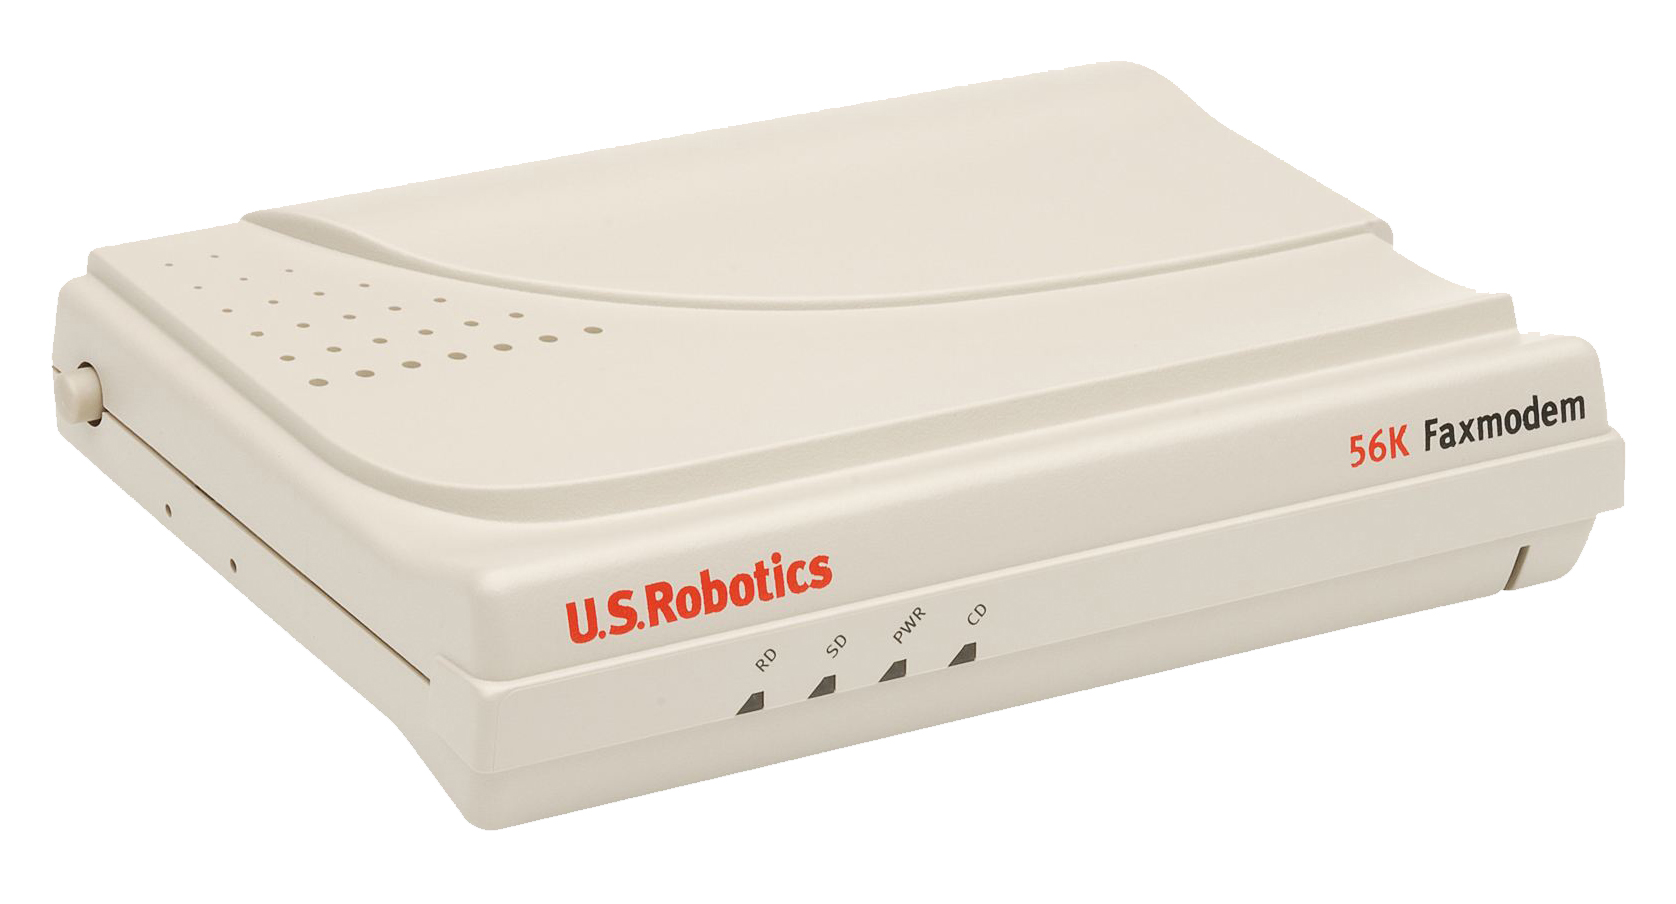 Robotics 56k modem adds even